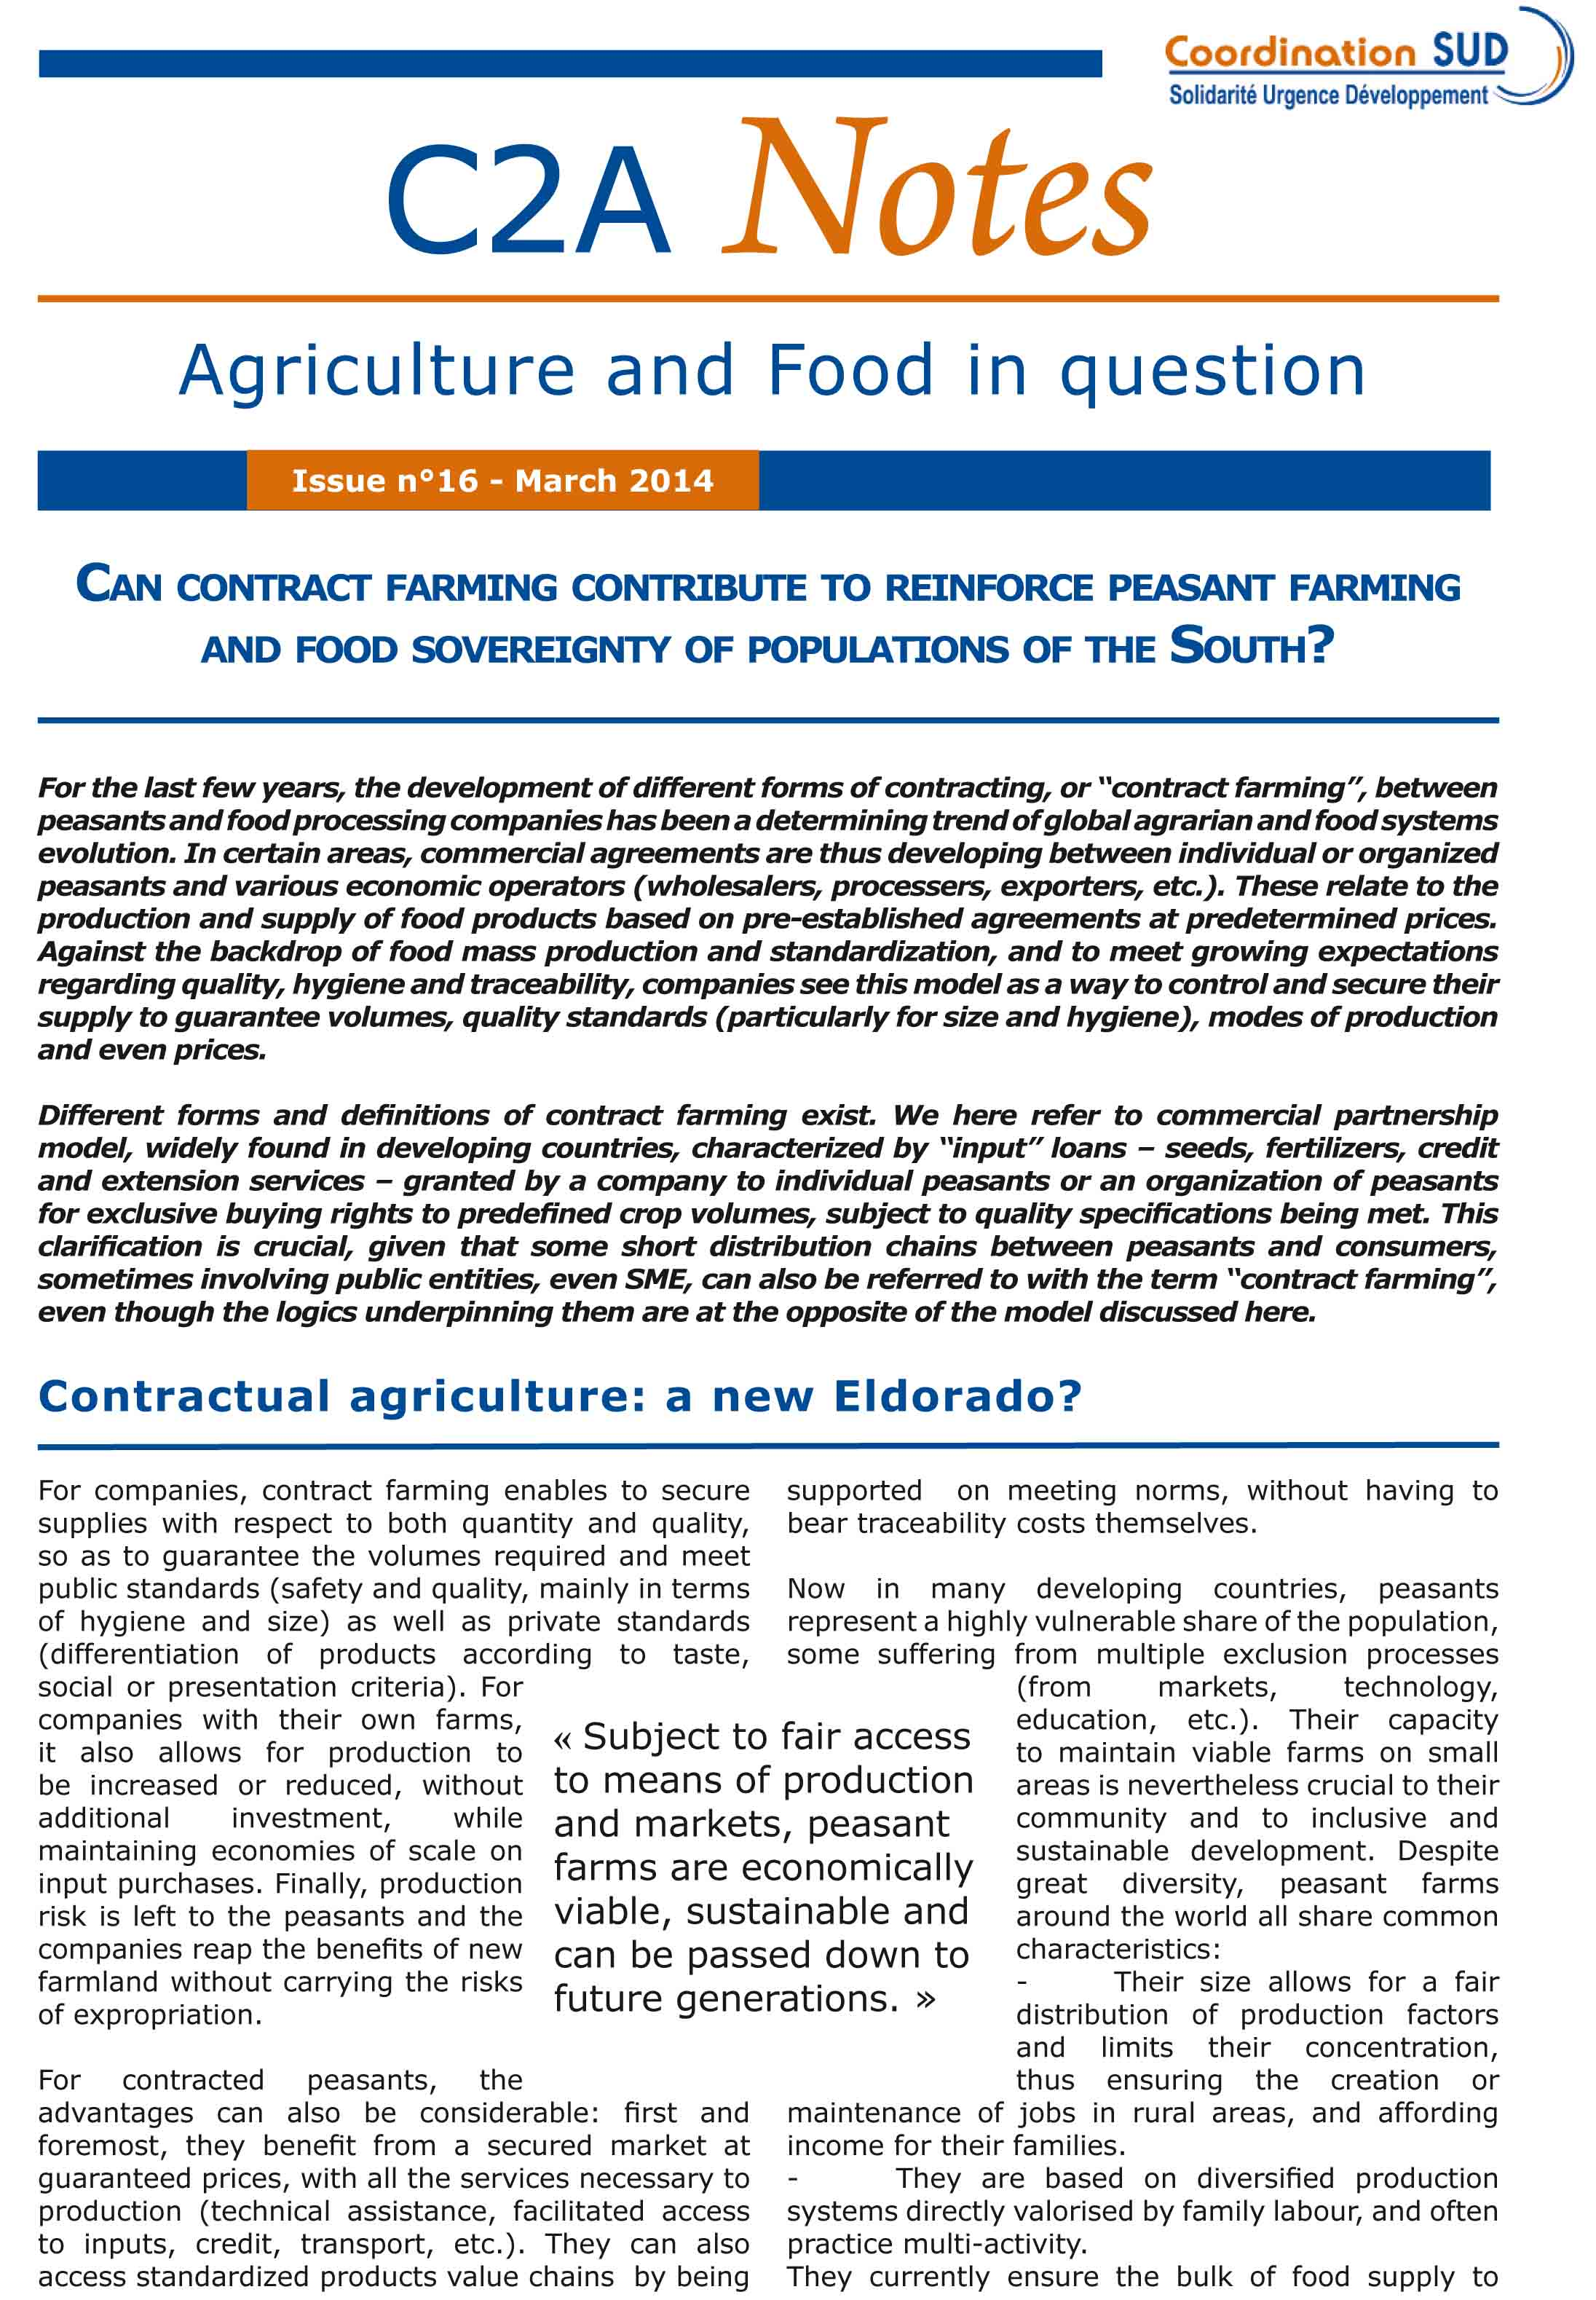 Can contract farming contribute to reinforce peasant farming and food sovereignty of populations of the south? Image principale